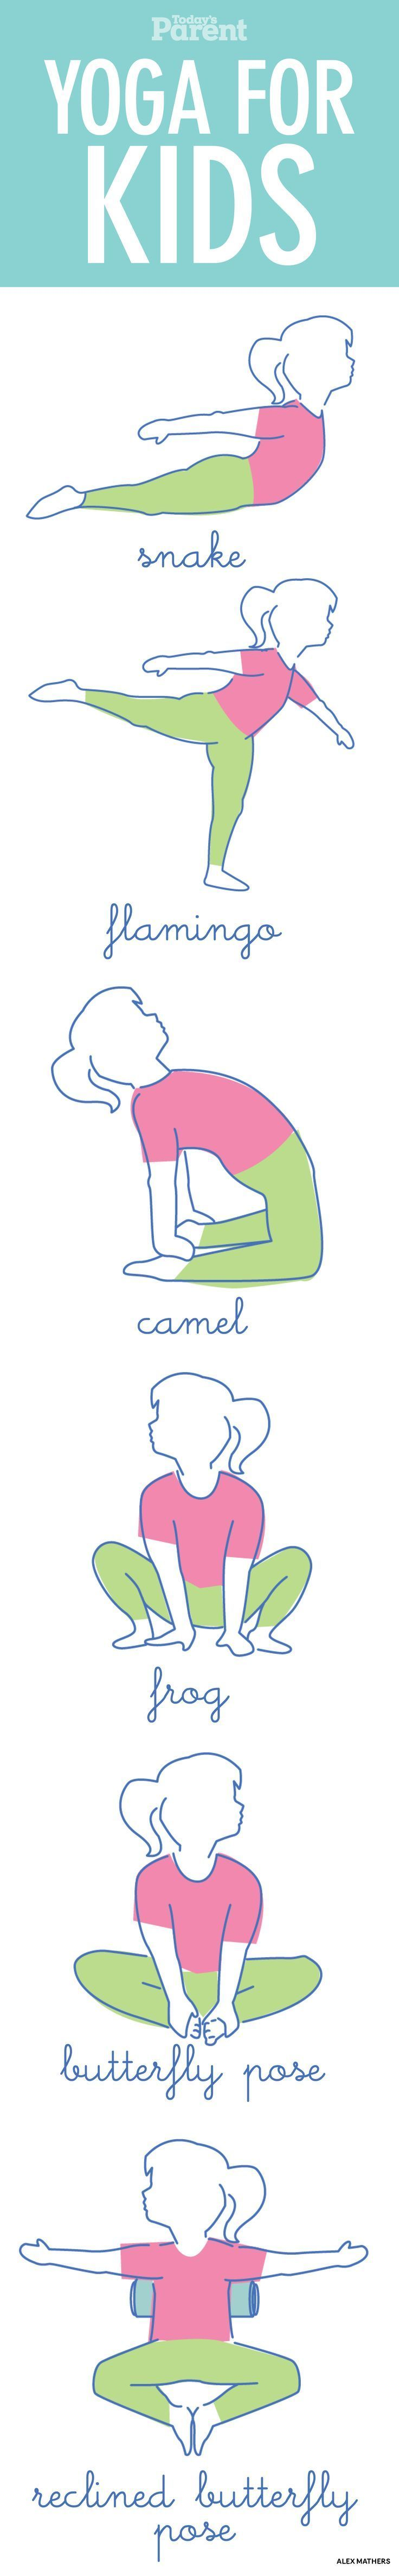 The Best Way to Do Yoga for Absolute Beginners - wikiHow